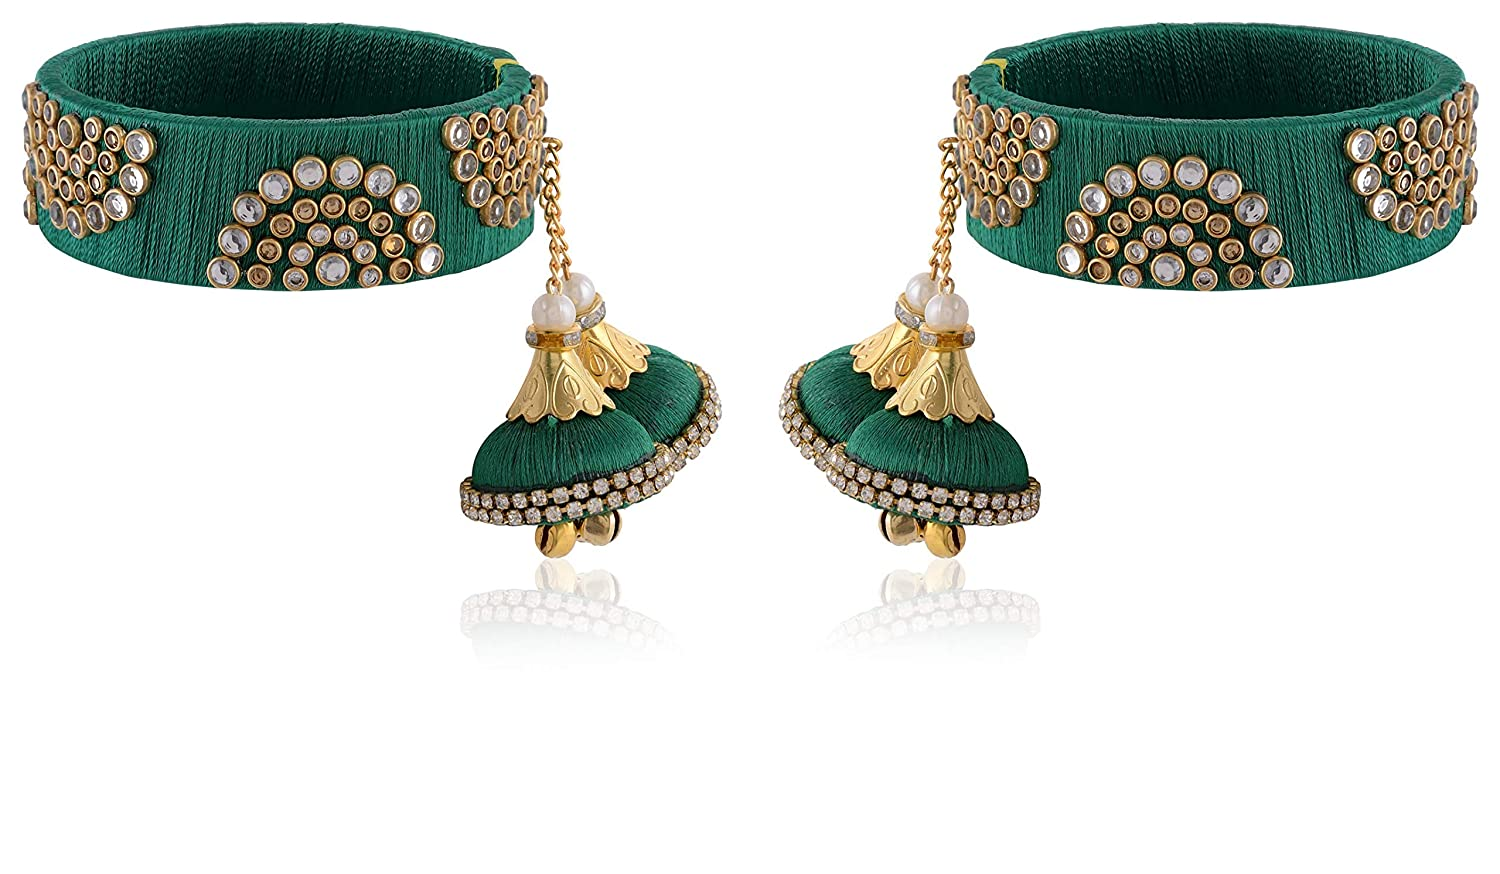 AakarShana Jewels Silk Thread Bangles Exclusively Made in India Hand Crafted Colourful Vibrant Beautiful Worn on All Occassions Traditional Functions Weddings Ethnic Wear and Party Wear